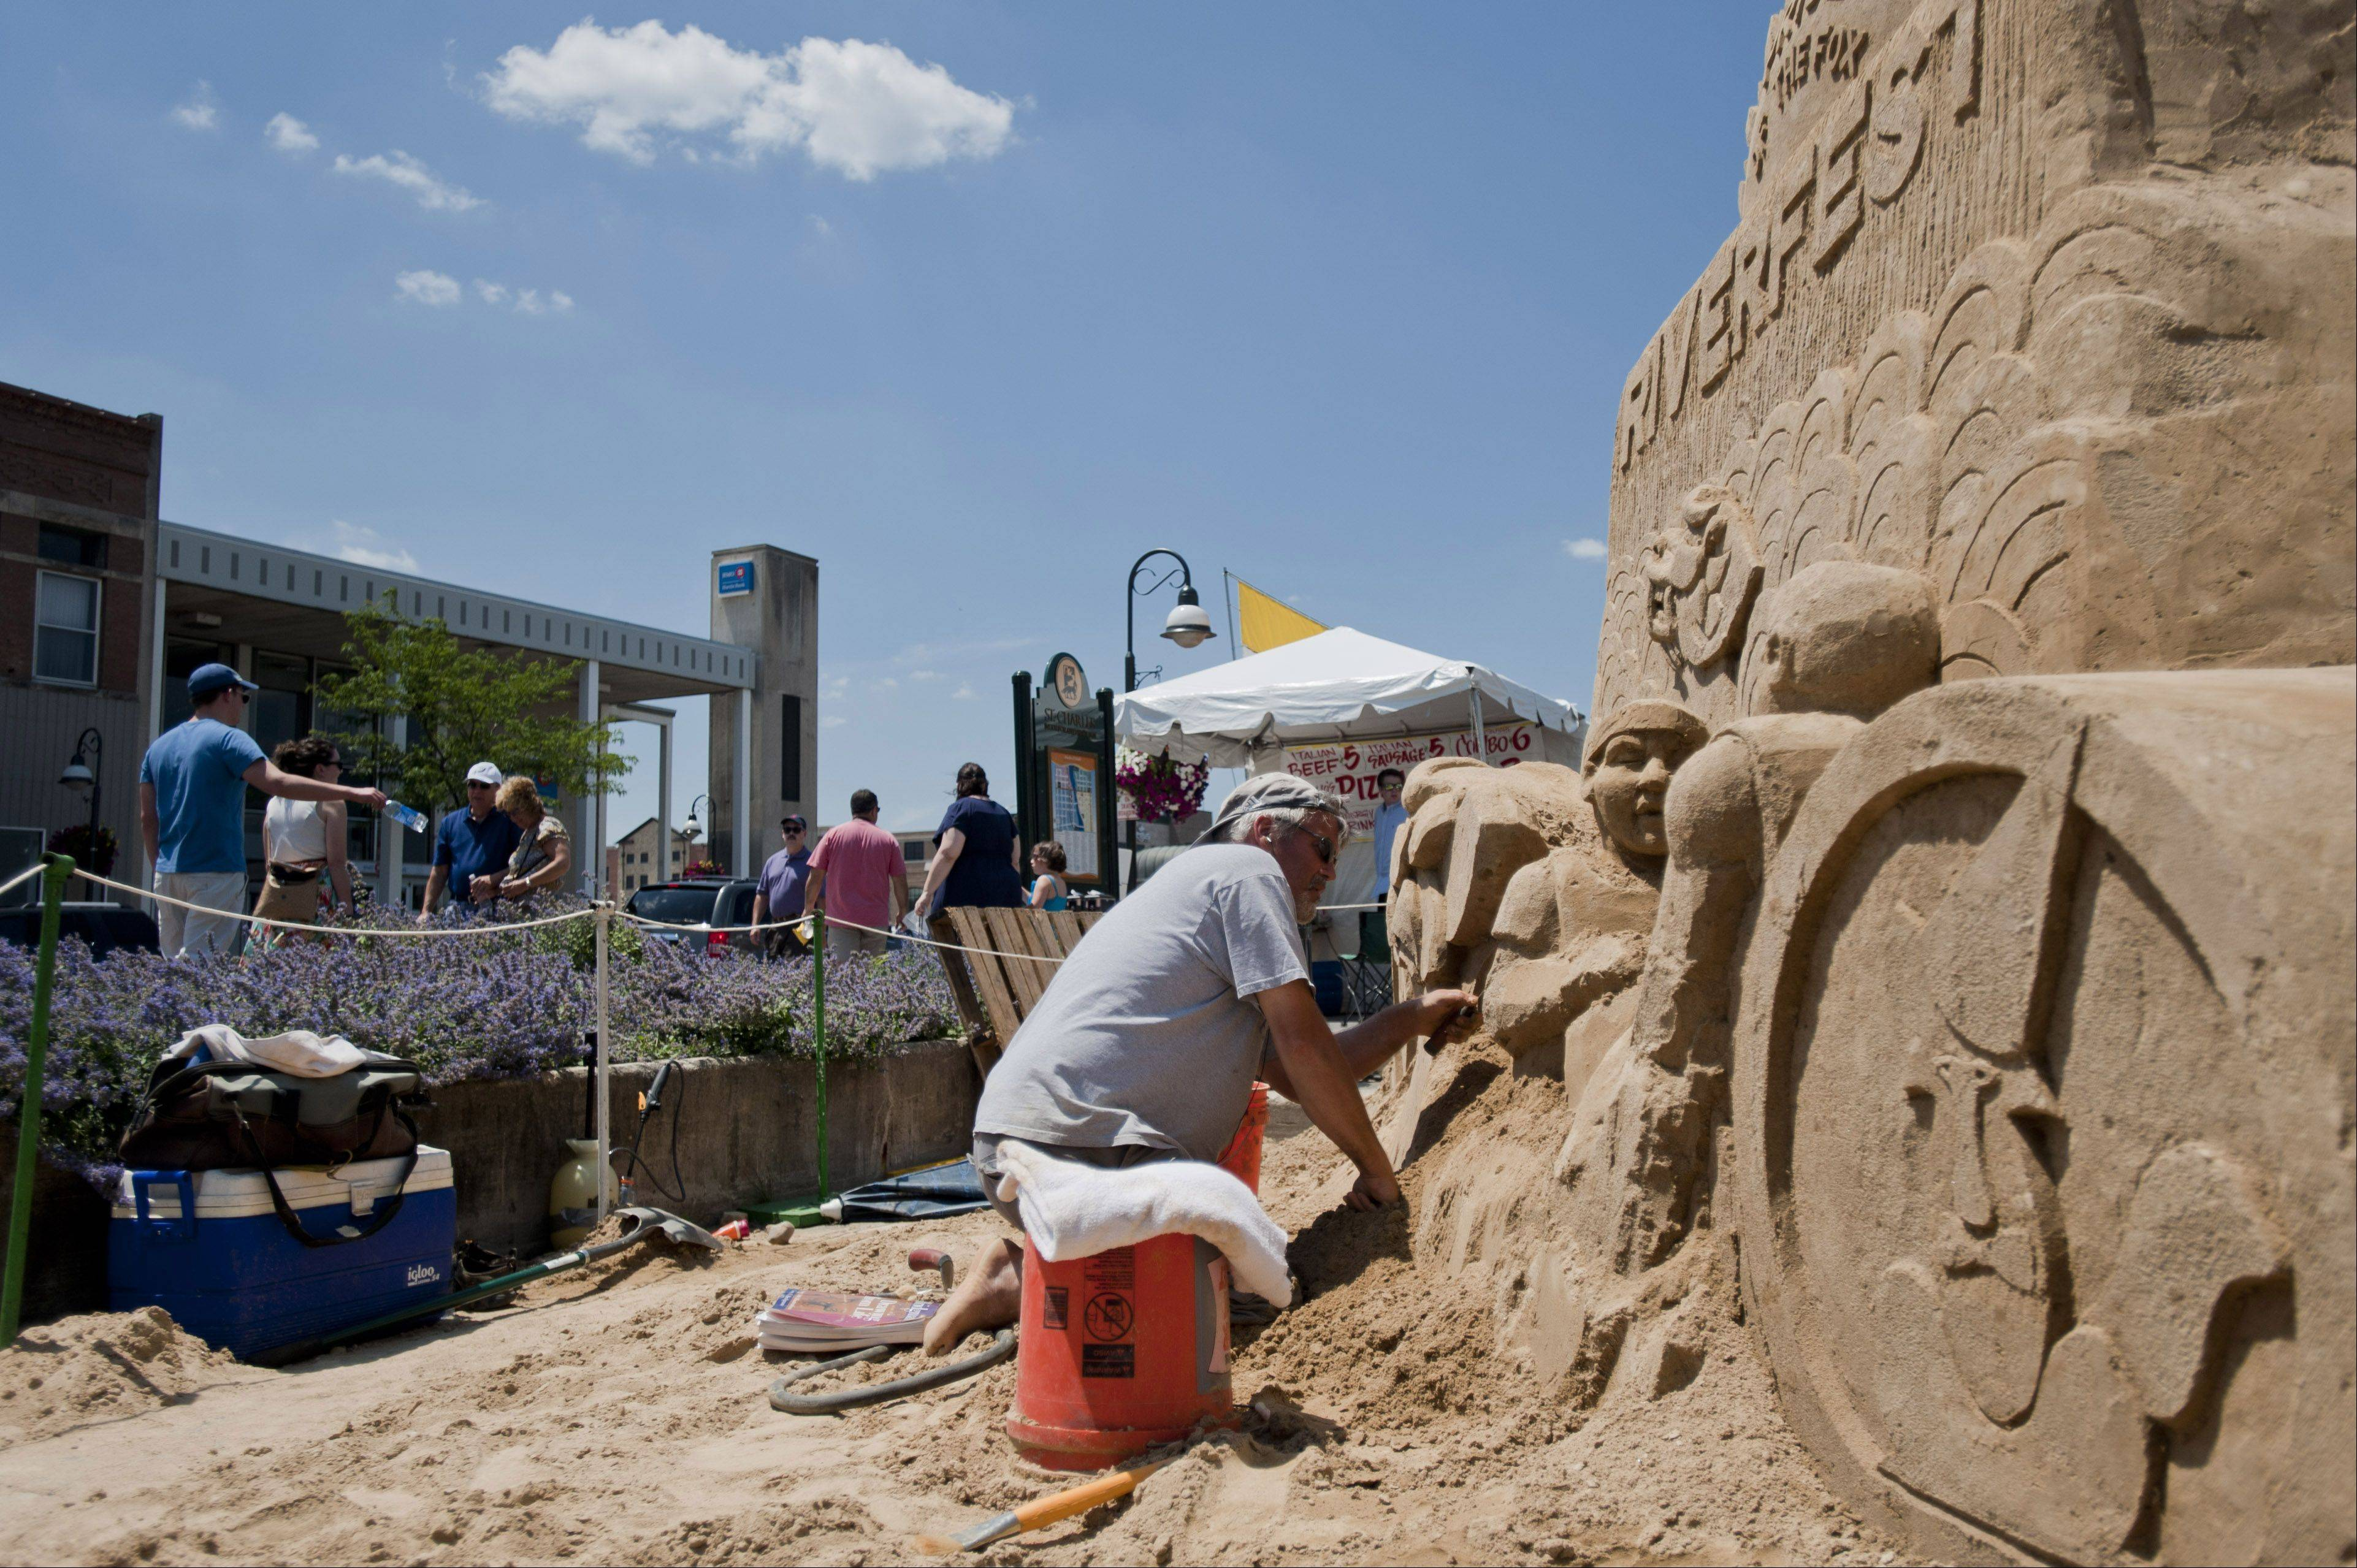 Artist Ted Siebert will sculpt a 40-ton sand sculpture at this weekend's City of St. Charles RiverFest.